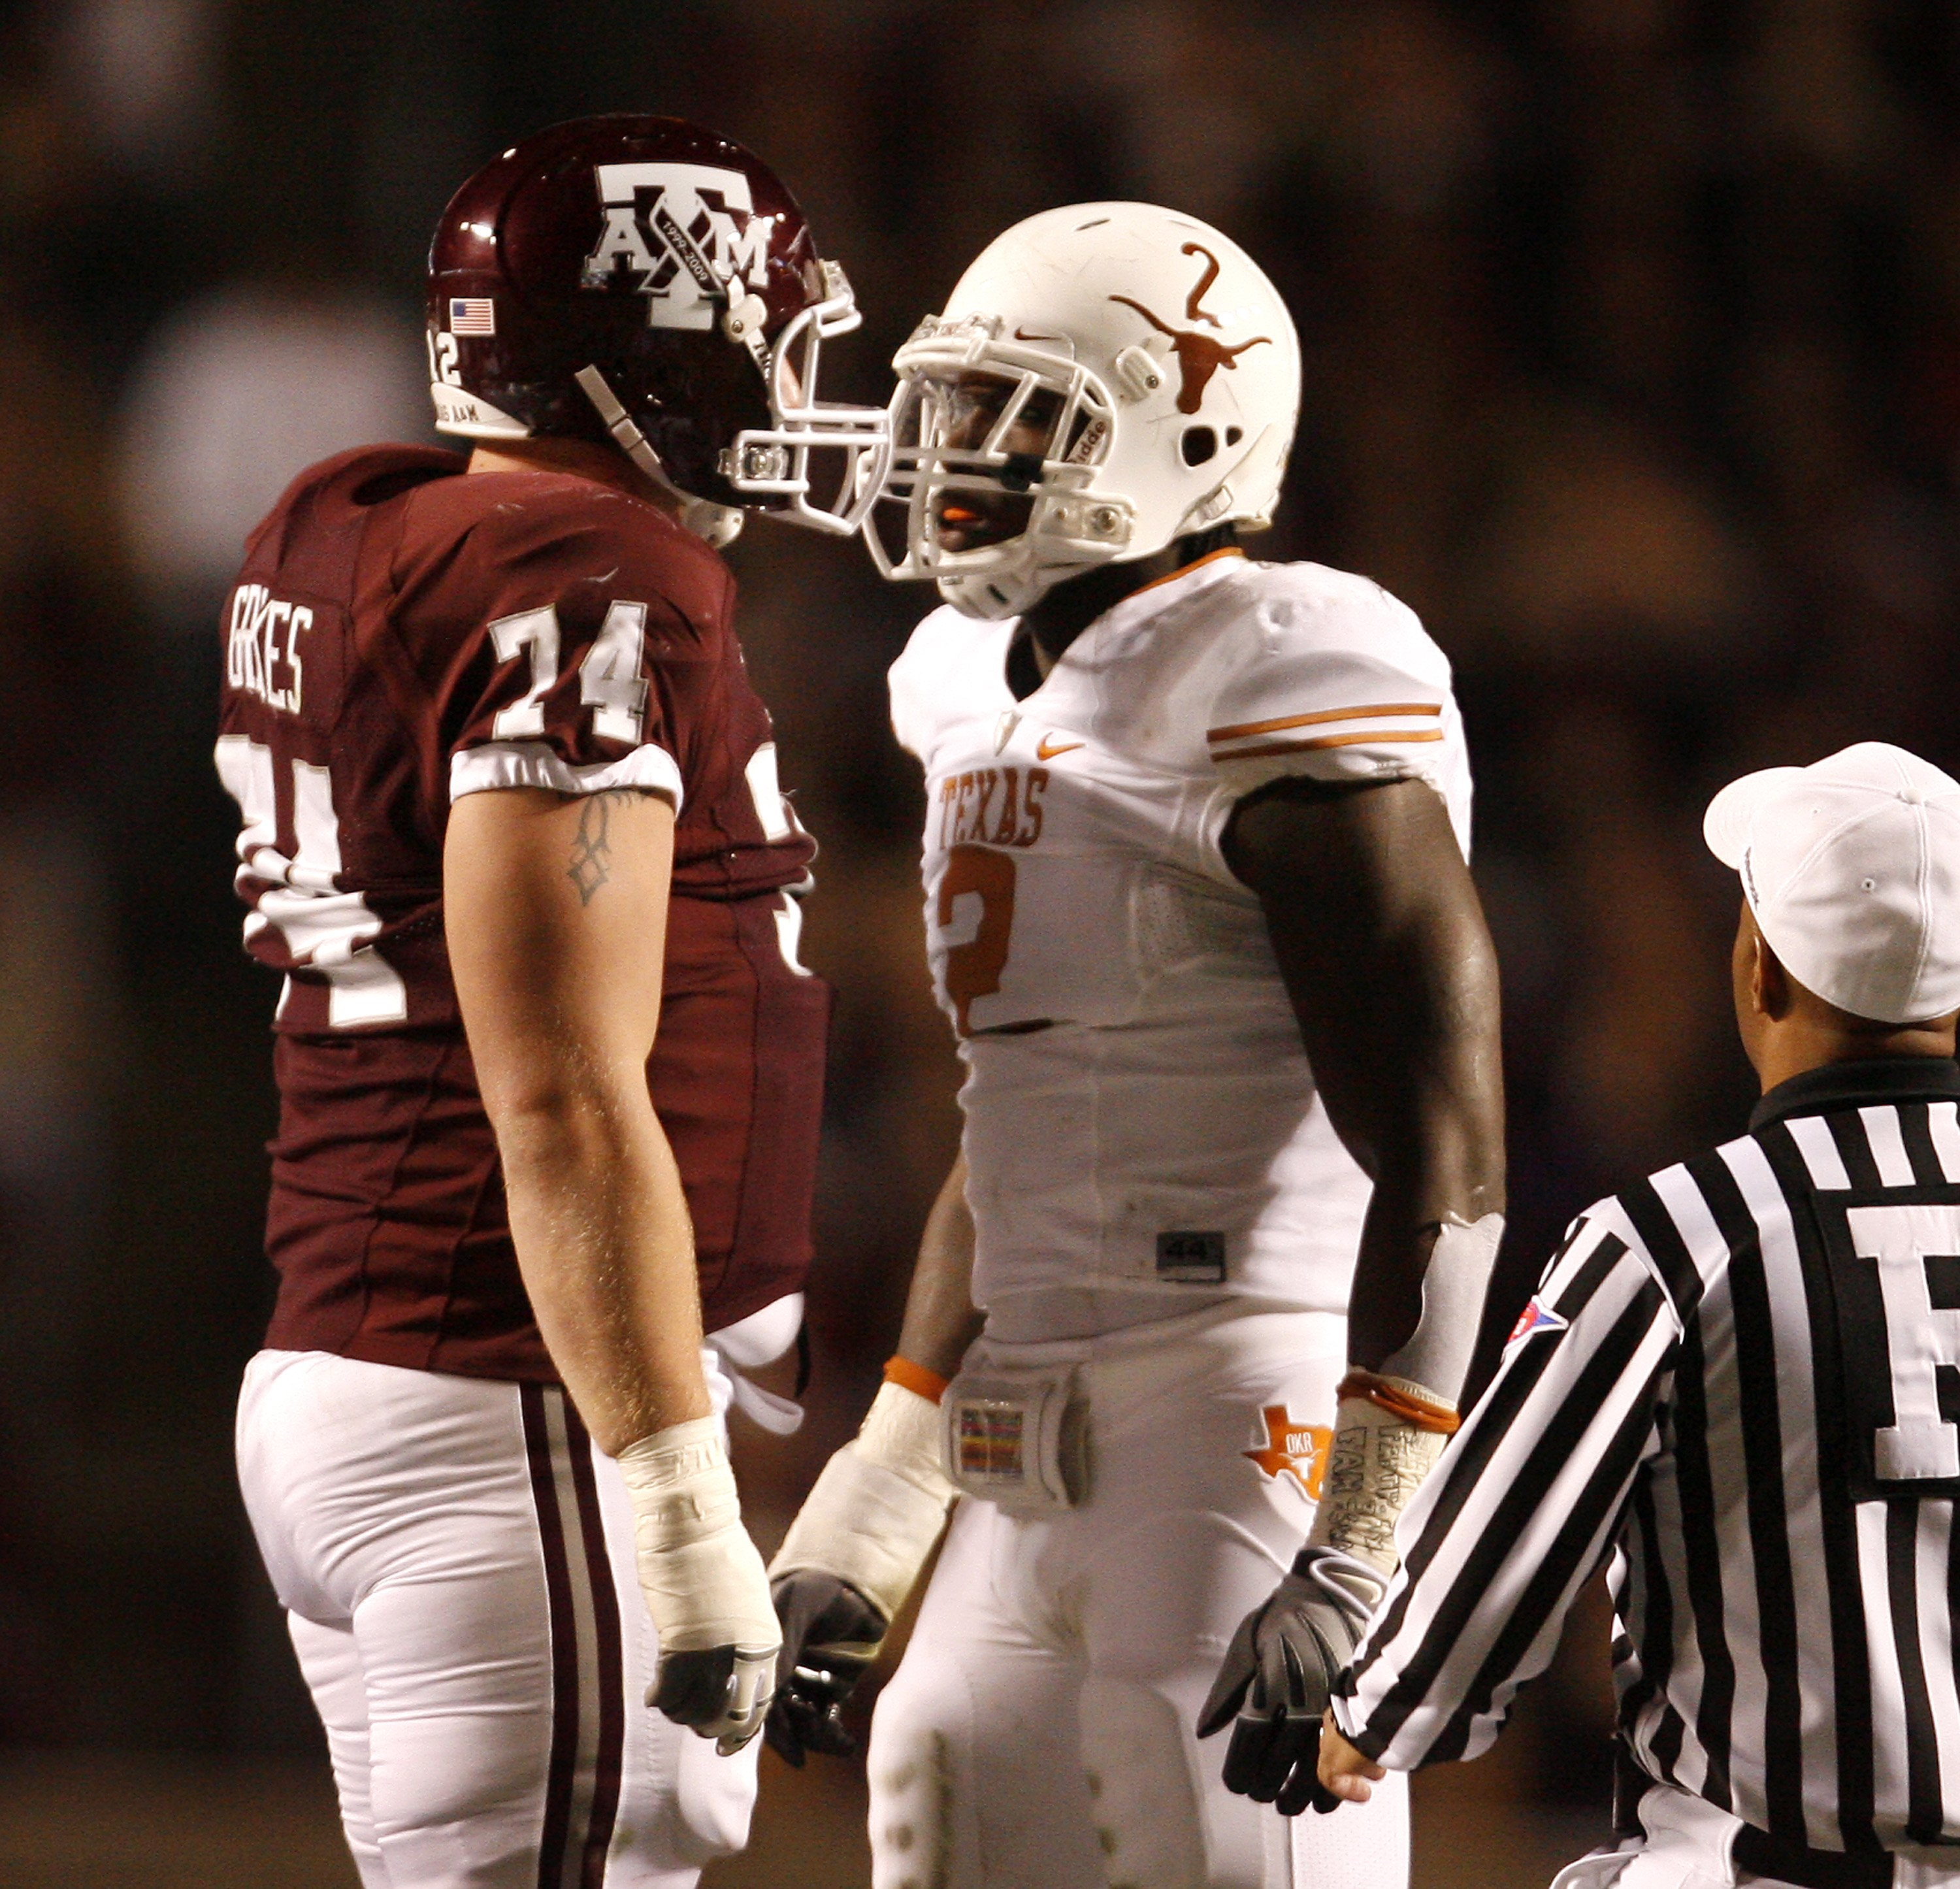 COLLEGE STATION, TX - NOVEMBER 26:  Right tackle Lee Grimes #74 of the Texas A&M Aggies confronts defensive end Sergio Kindle #2 of the Texas Longhorns in the first half at Kyle Field on November 26, 2009 in College Station, Texas. The Longhorns defeated